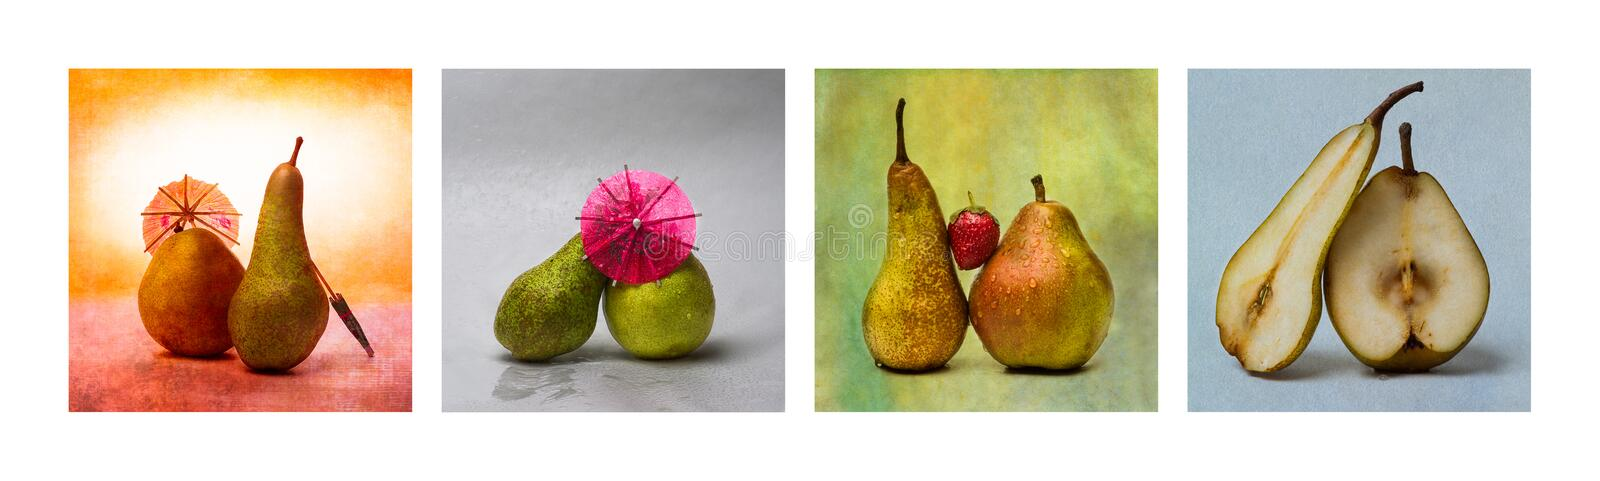 Collage Love Story - Horizontal. Collage Love Story. Collage of four photos of pear fruits, cocktail umbrellas and straberry. Four funny scenes describing the royalty free stock photos